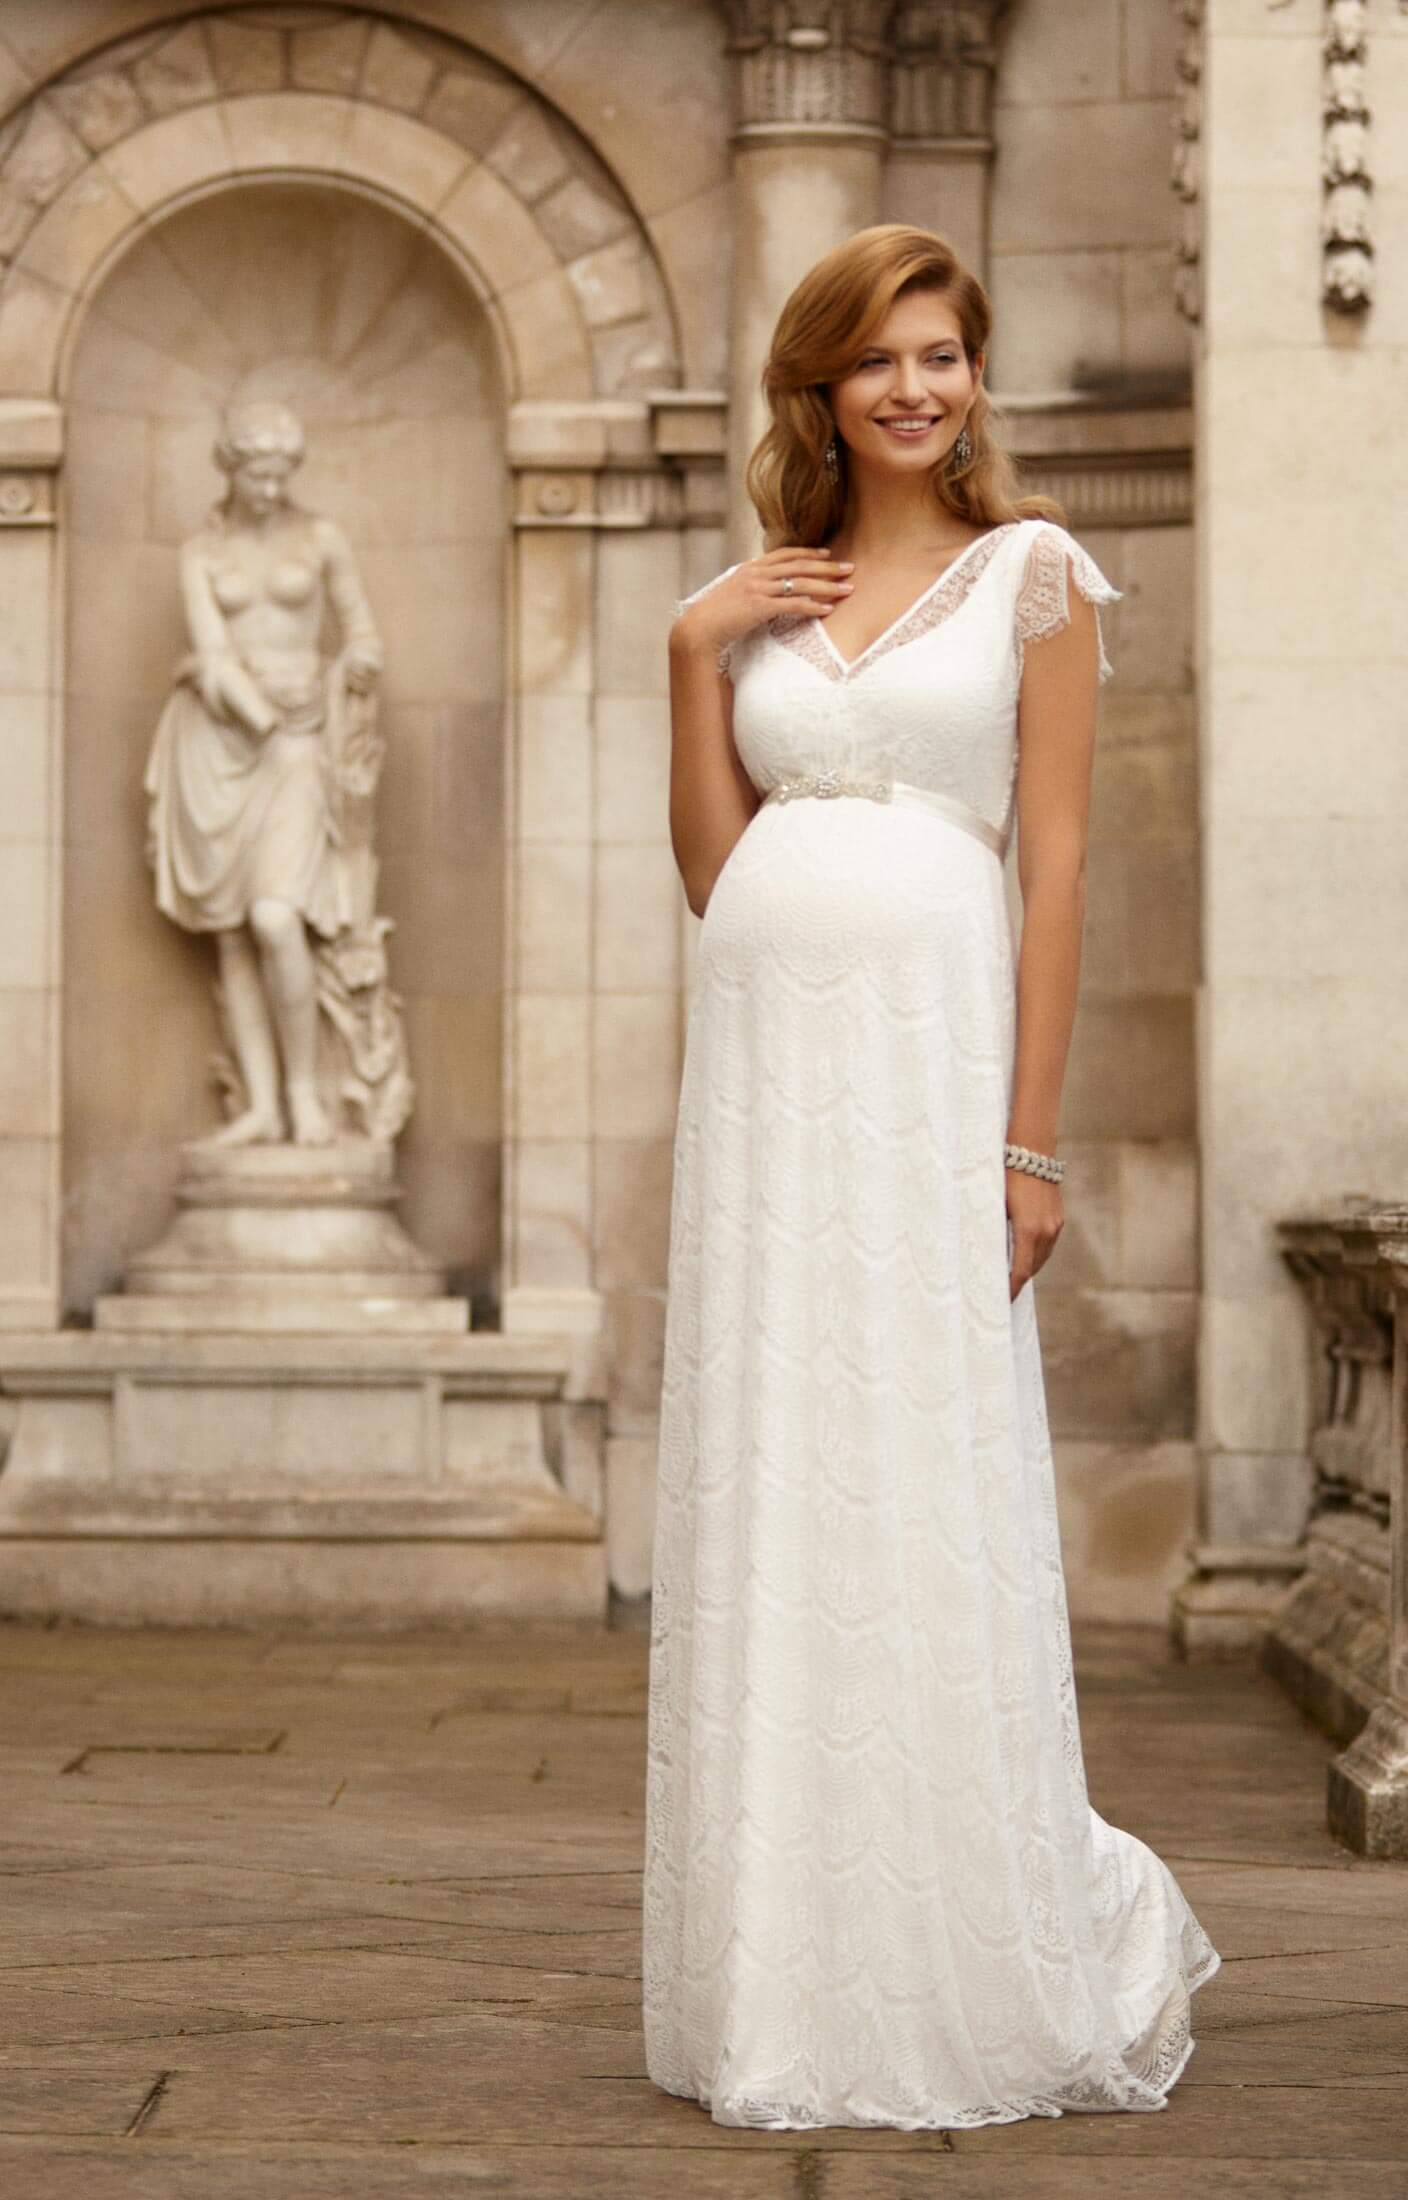 Kristin Maternity Wedding Gown Long Ivory pregnant wedding dress Kristin Maternity Wedding Gown Long Ivory by Tiffany Rose